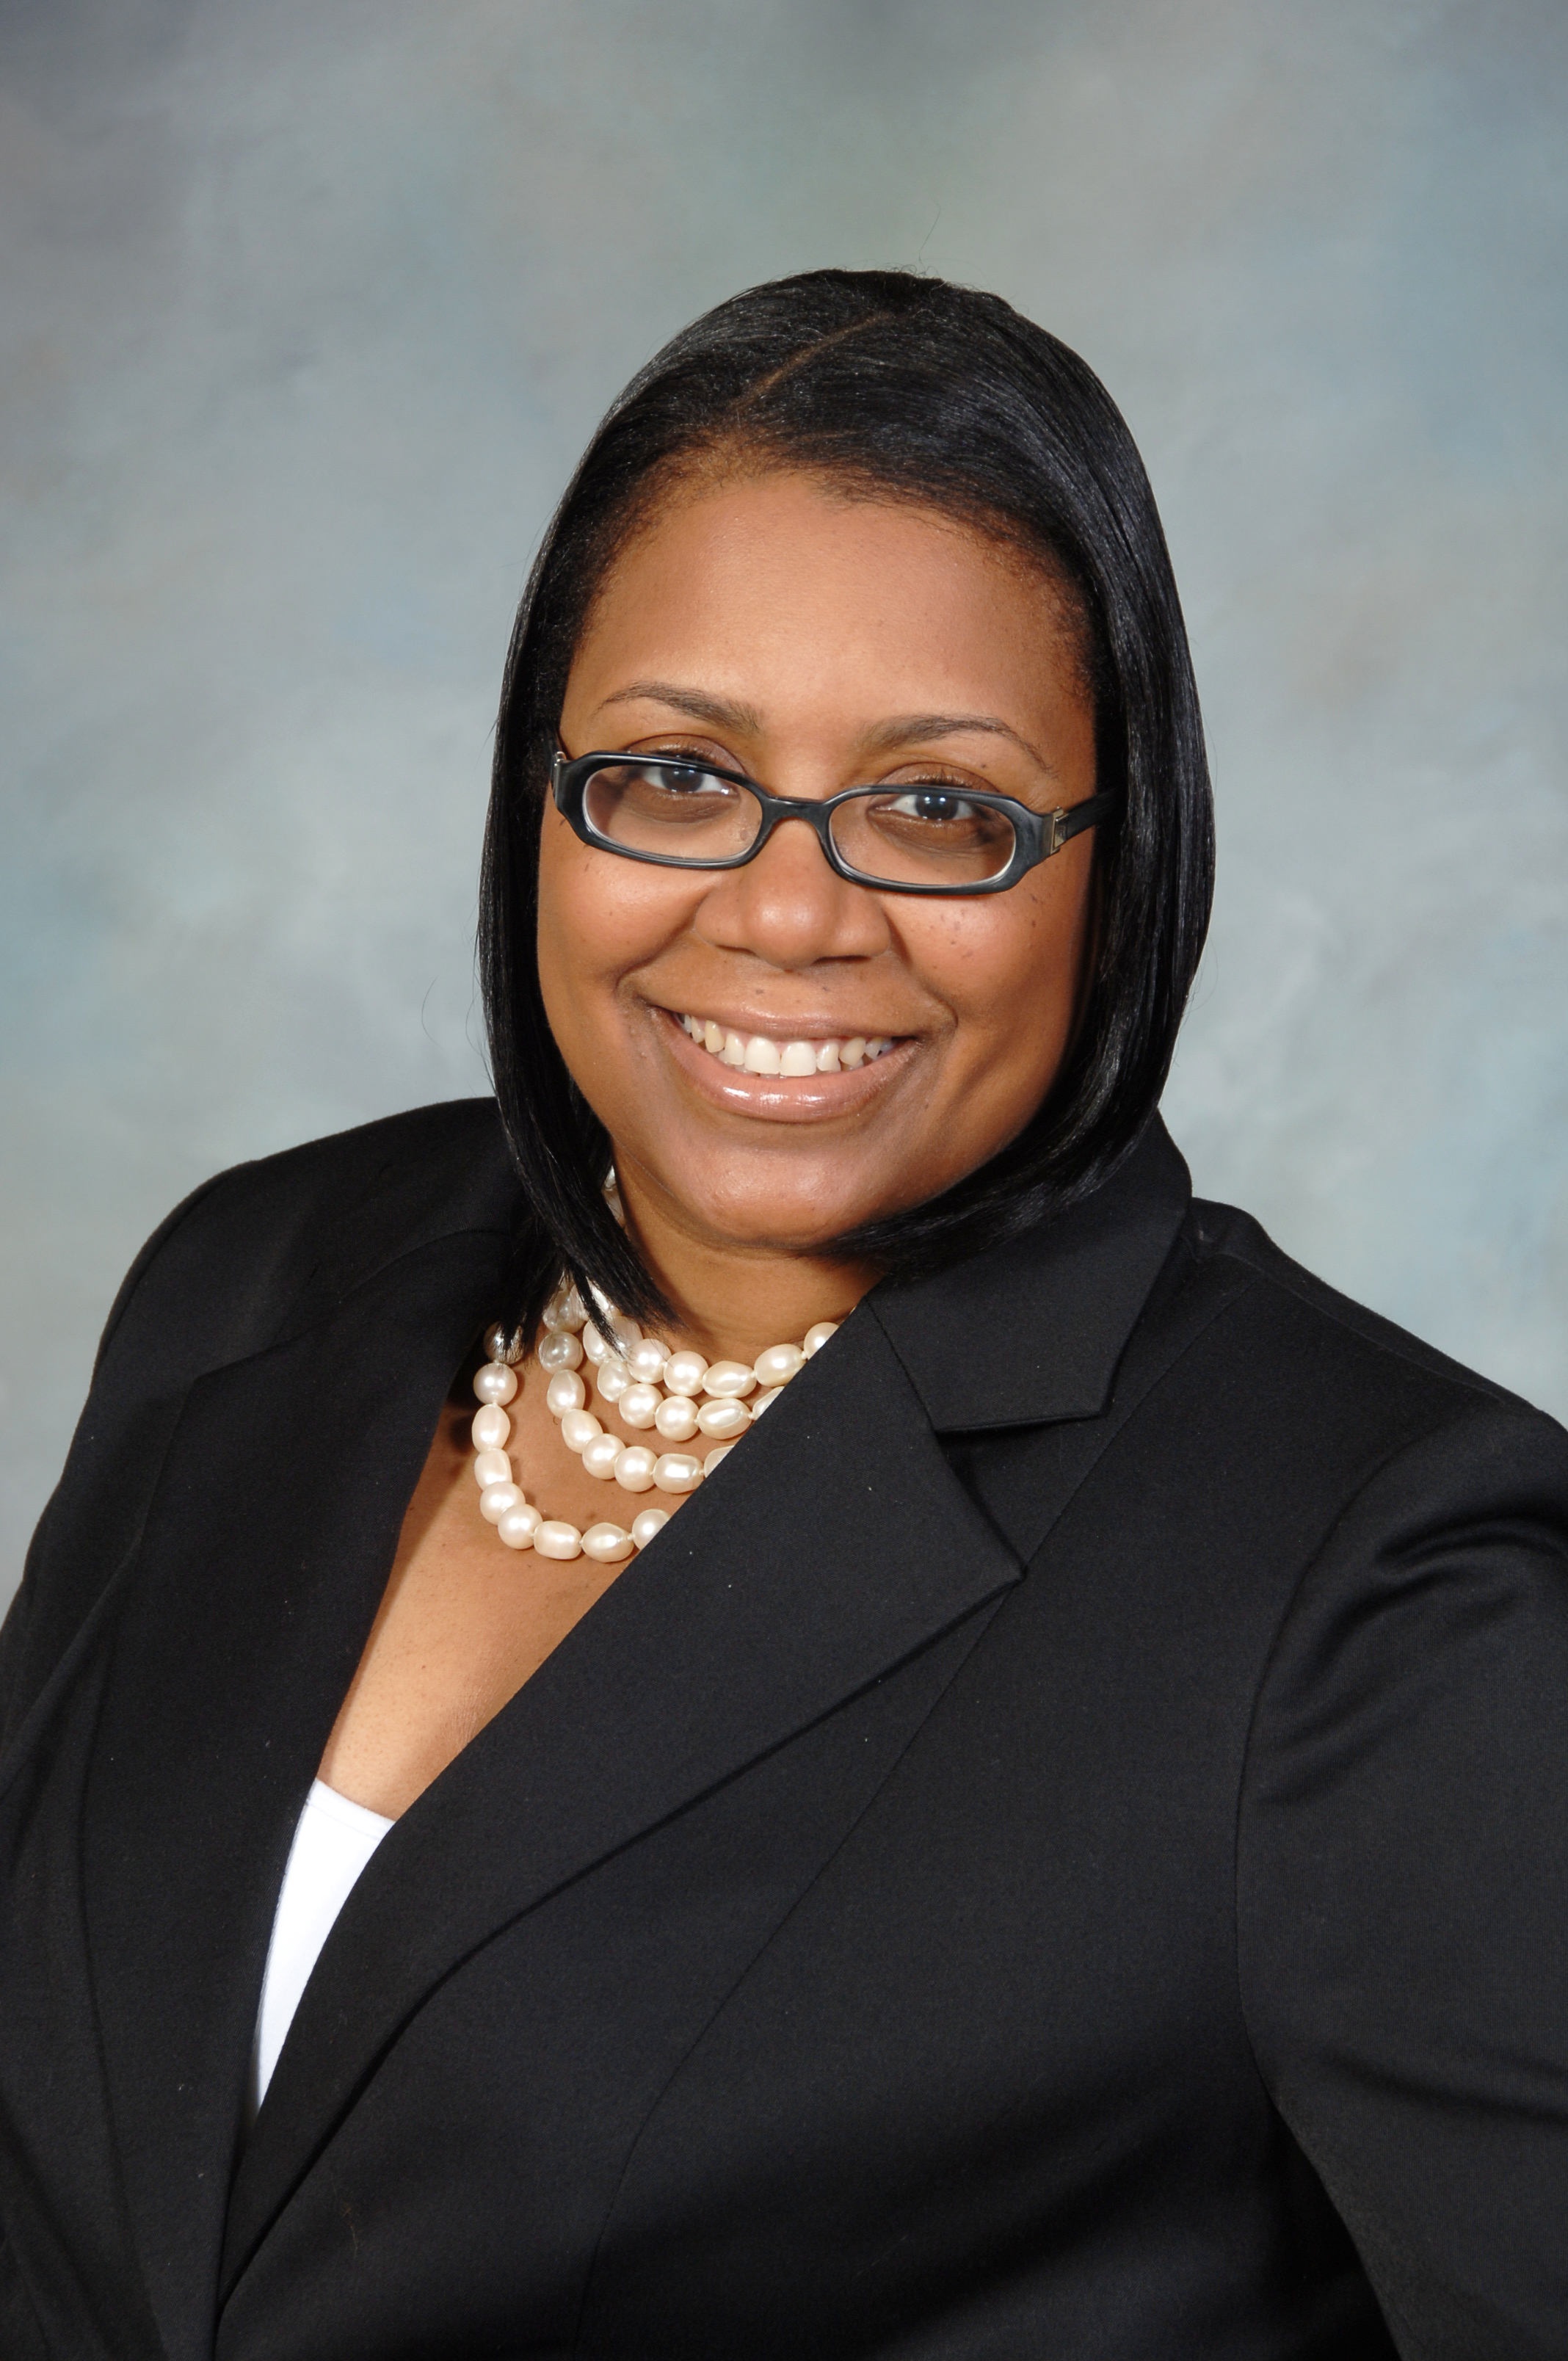 Meet Sharon Jackson, Matchbook Learning's New Director of Finance!